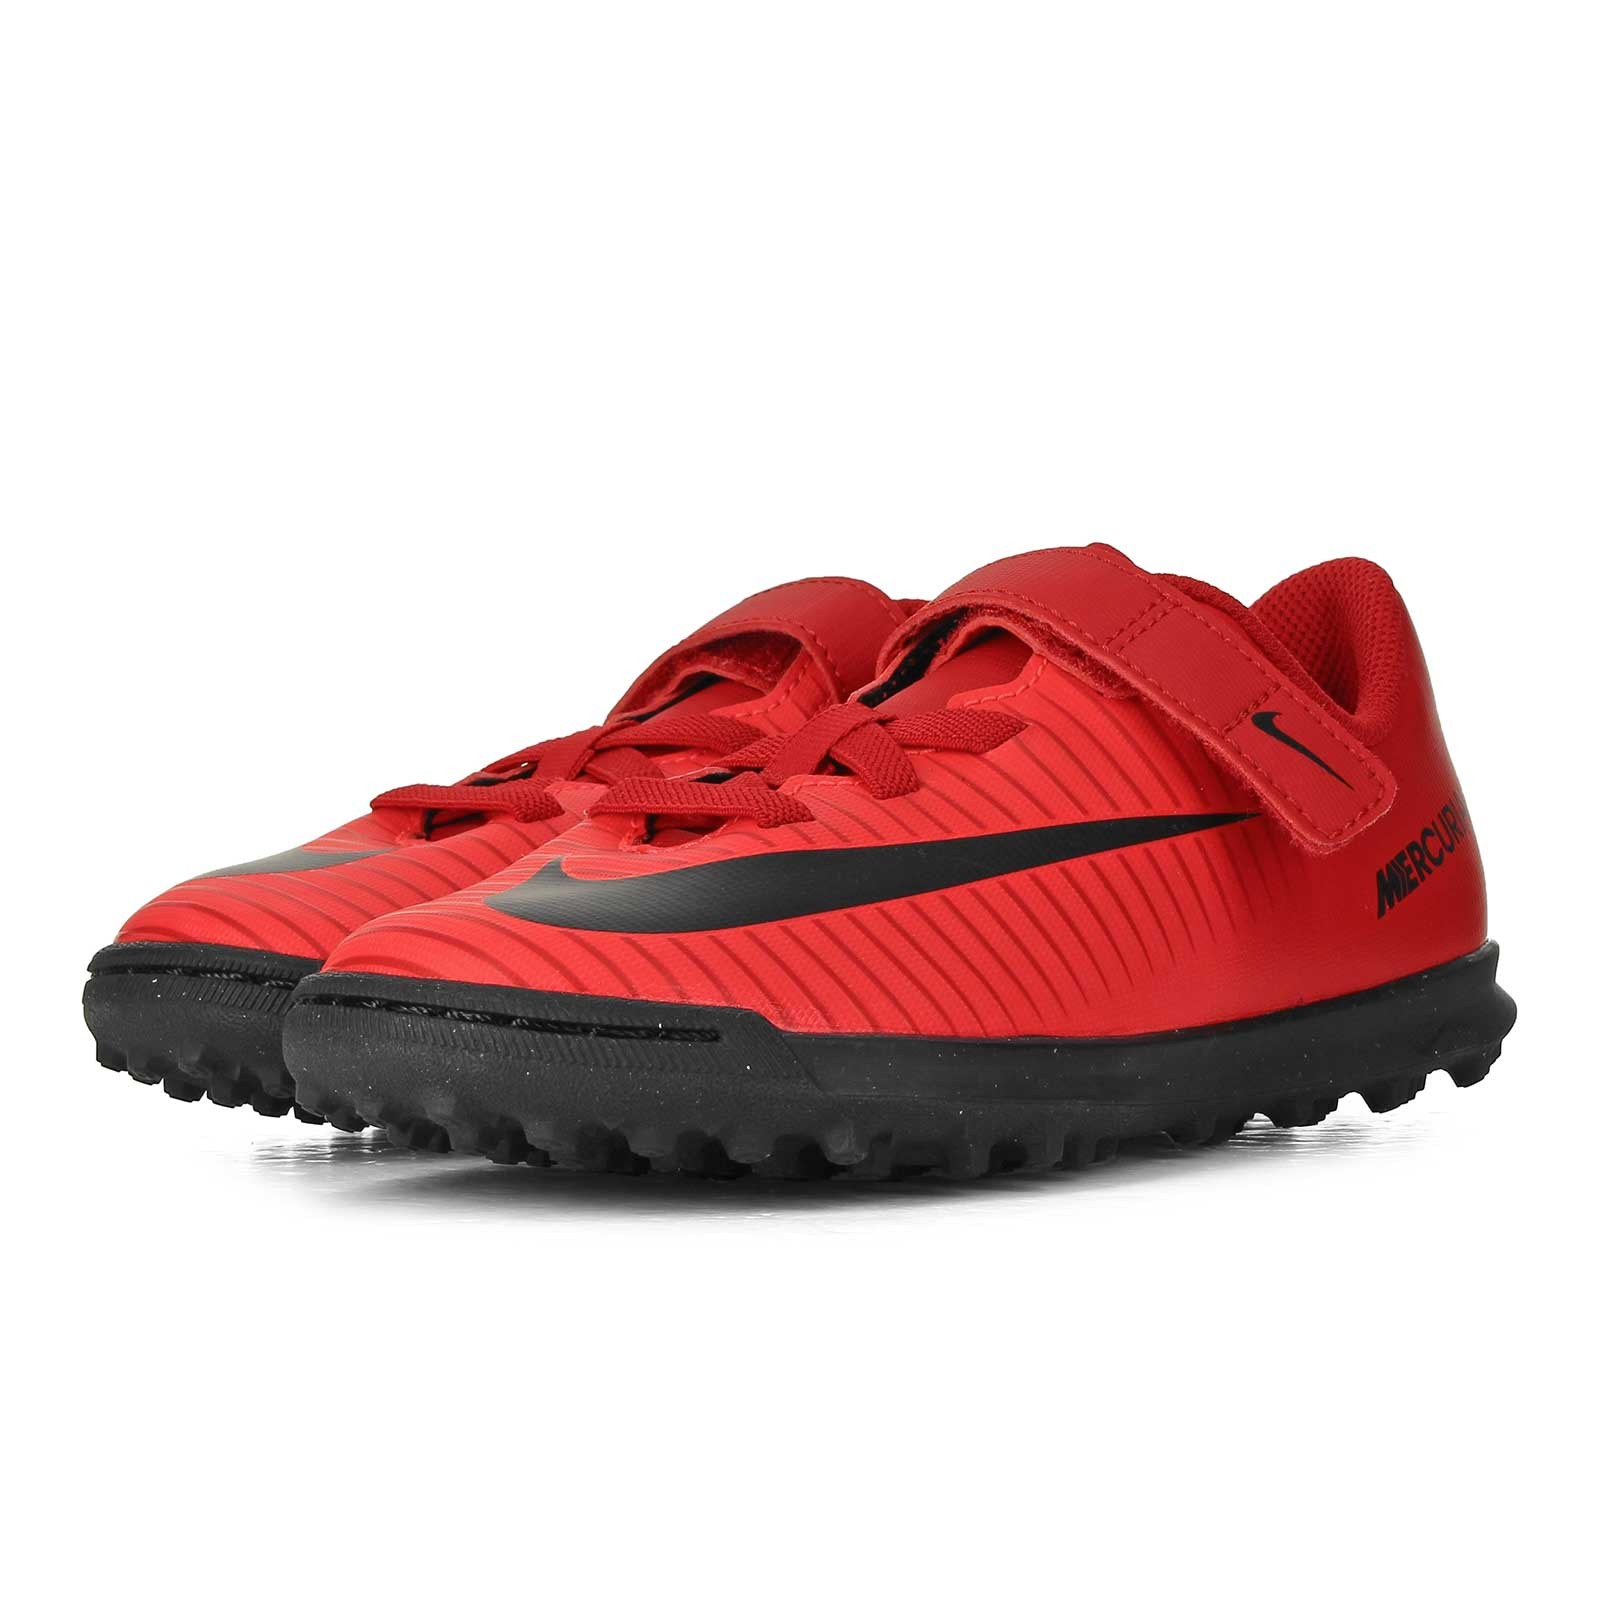 NIKE MERCURIAL VORTEX III (V) TF 831942-616 JR